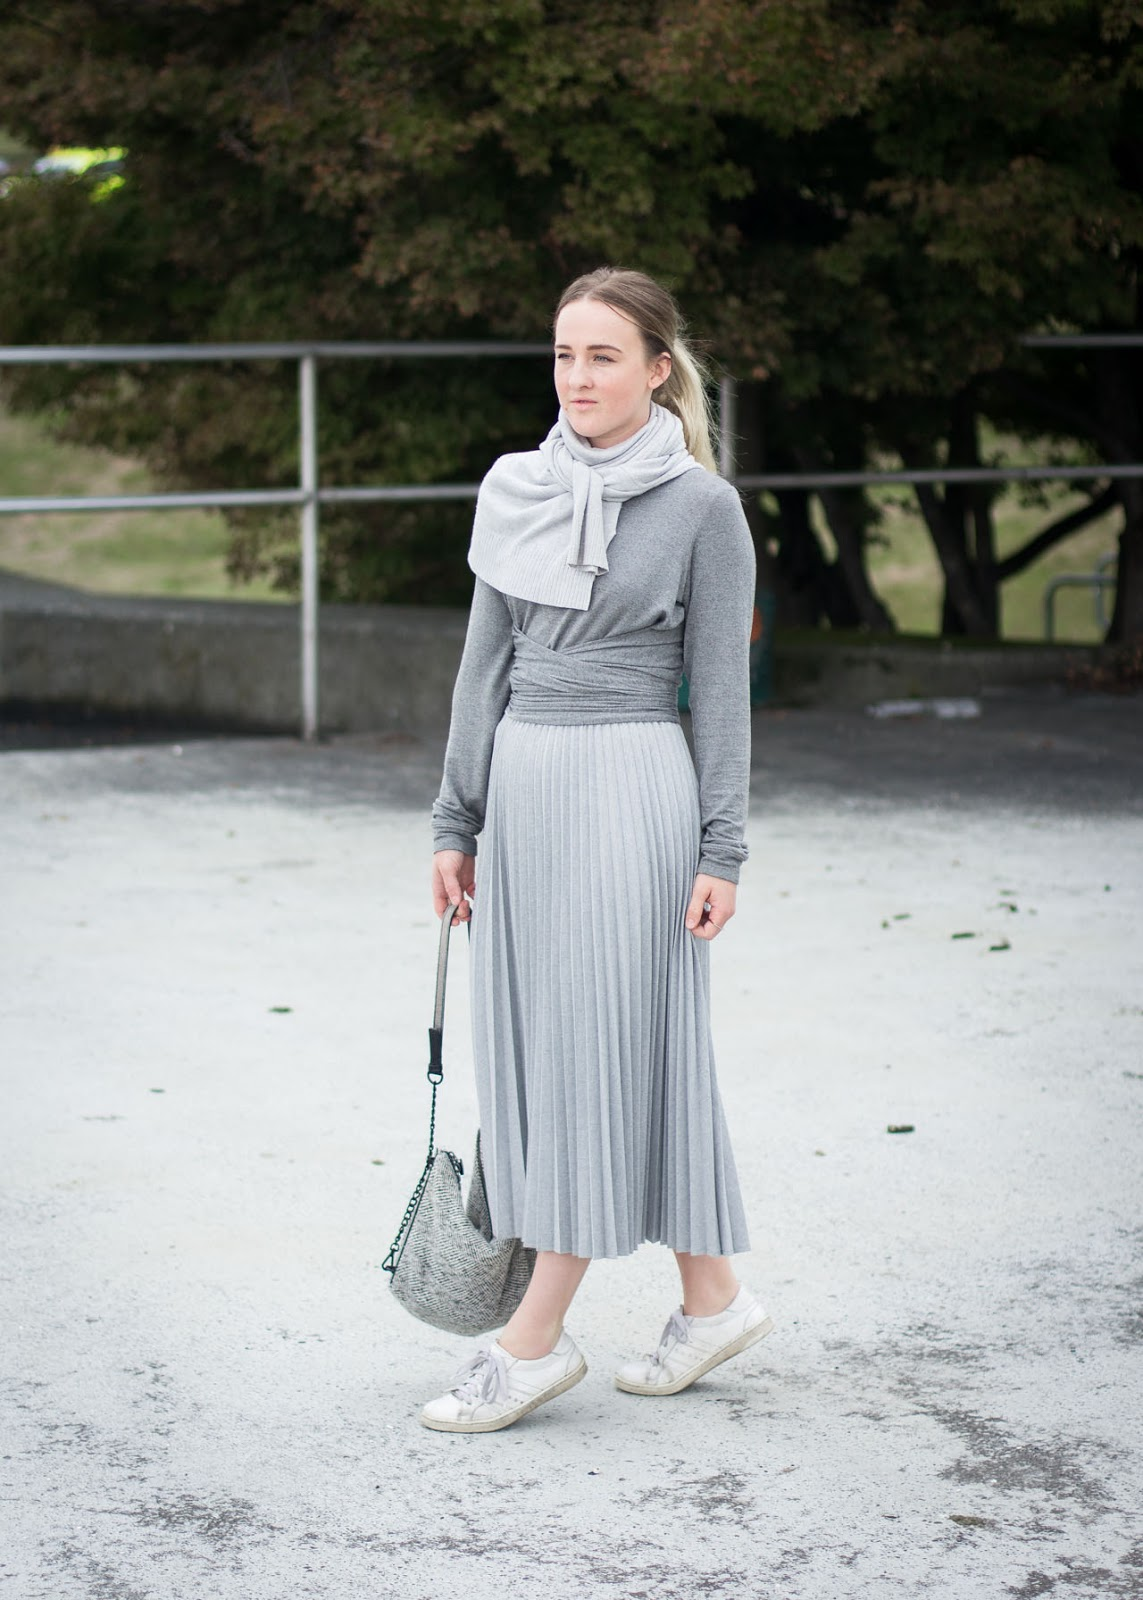 Grey outfit - Monotone style - Canadian Fashion Blogger - Aritzia - Club Monaco